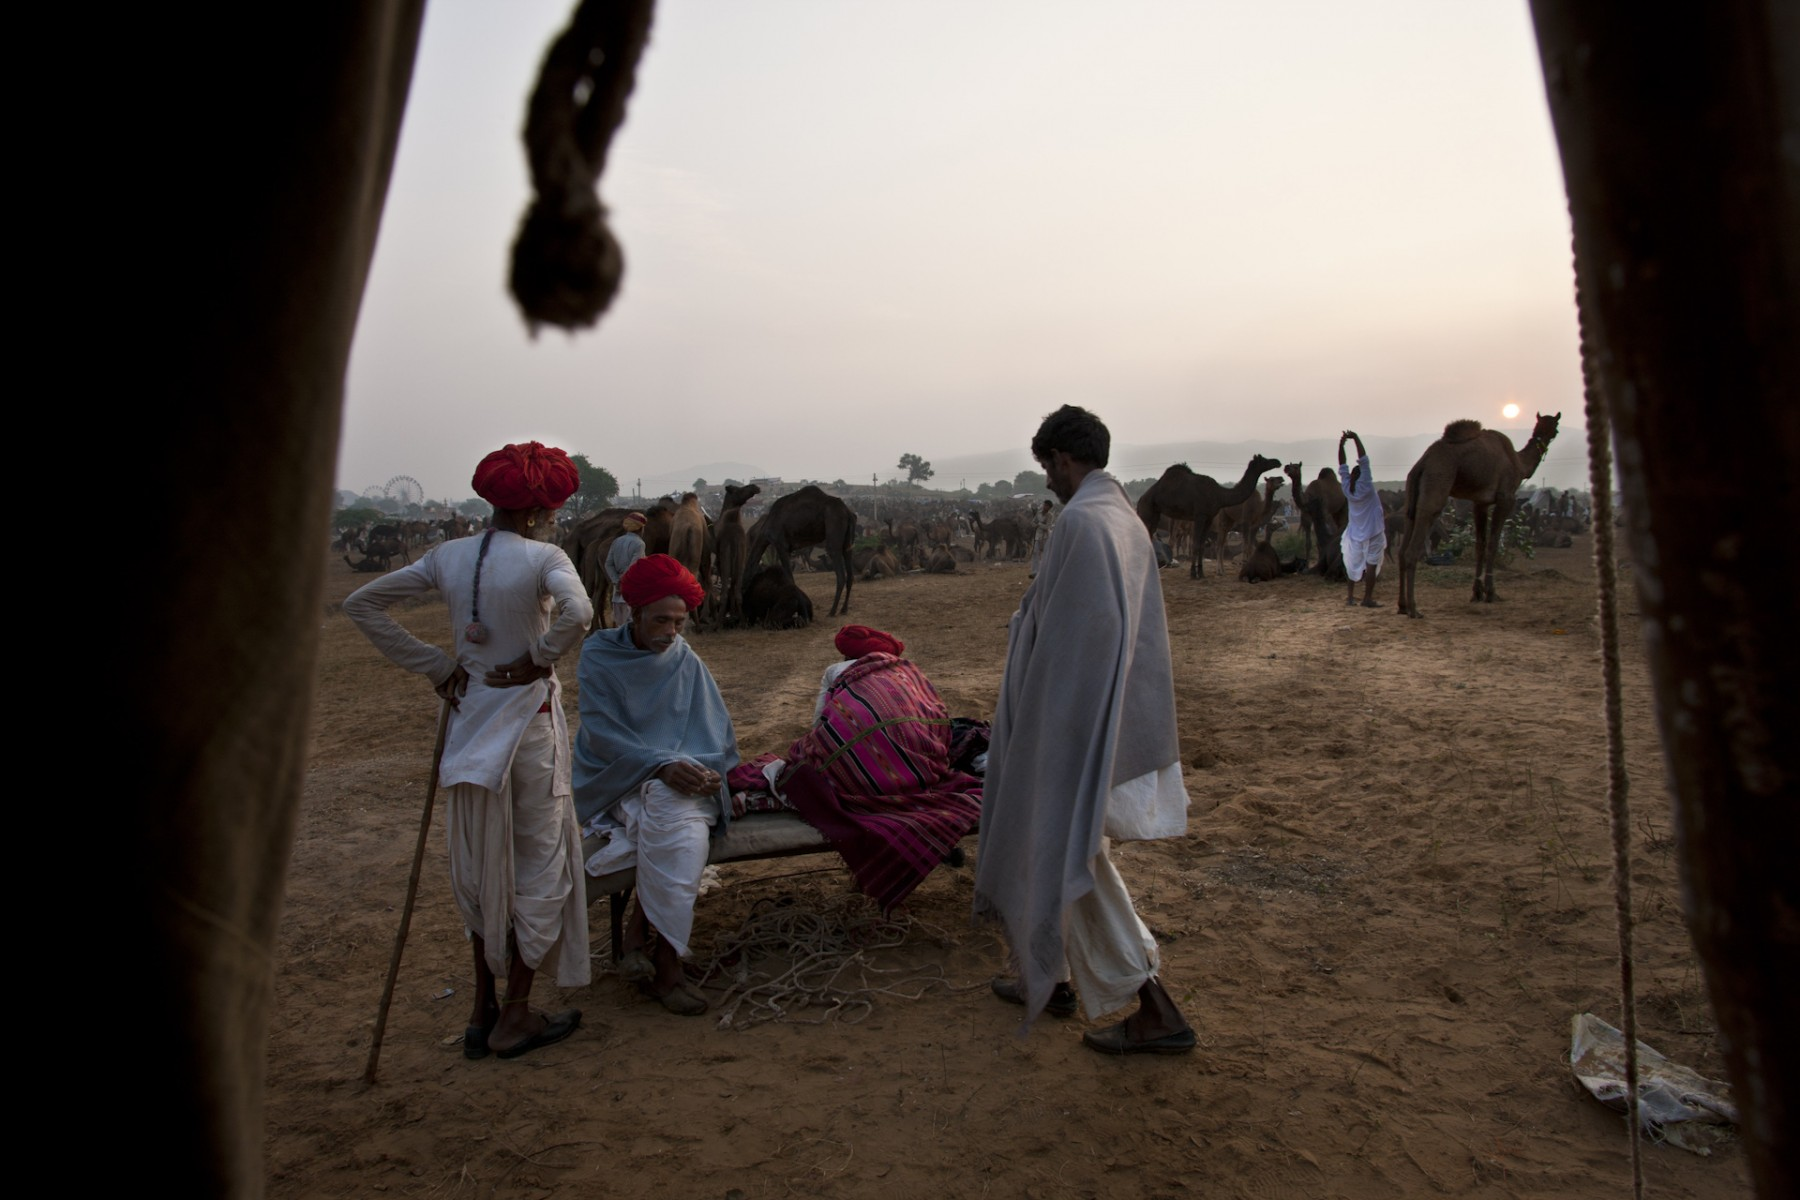 Sunrise at the Pushkar camel fair